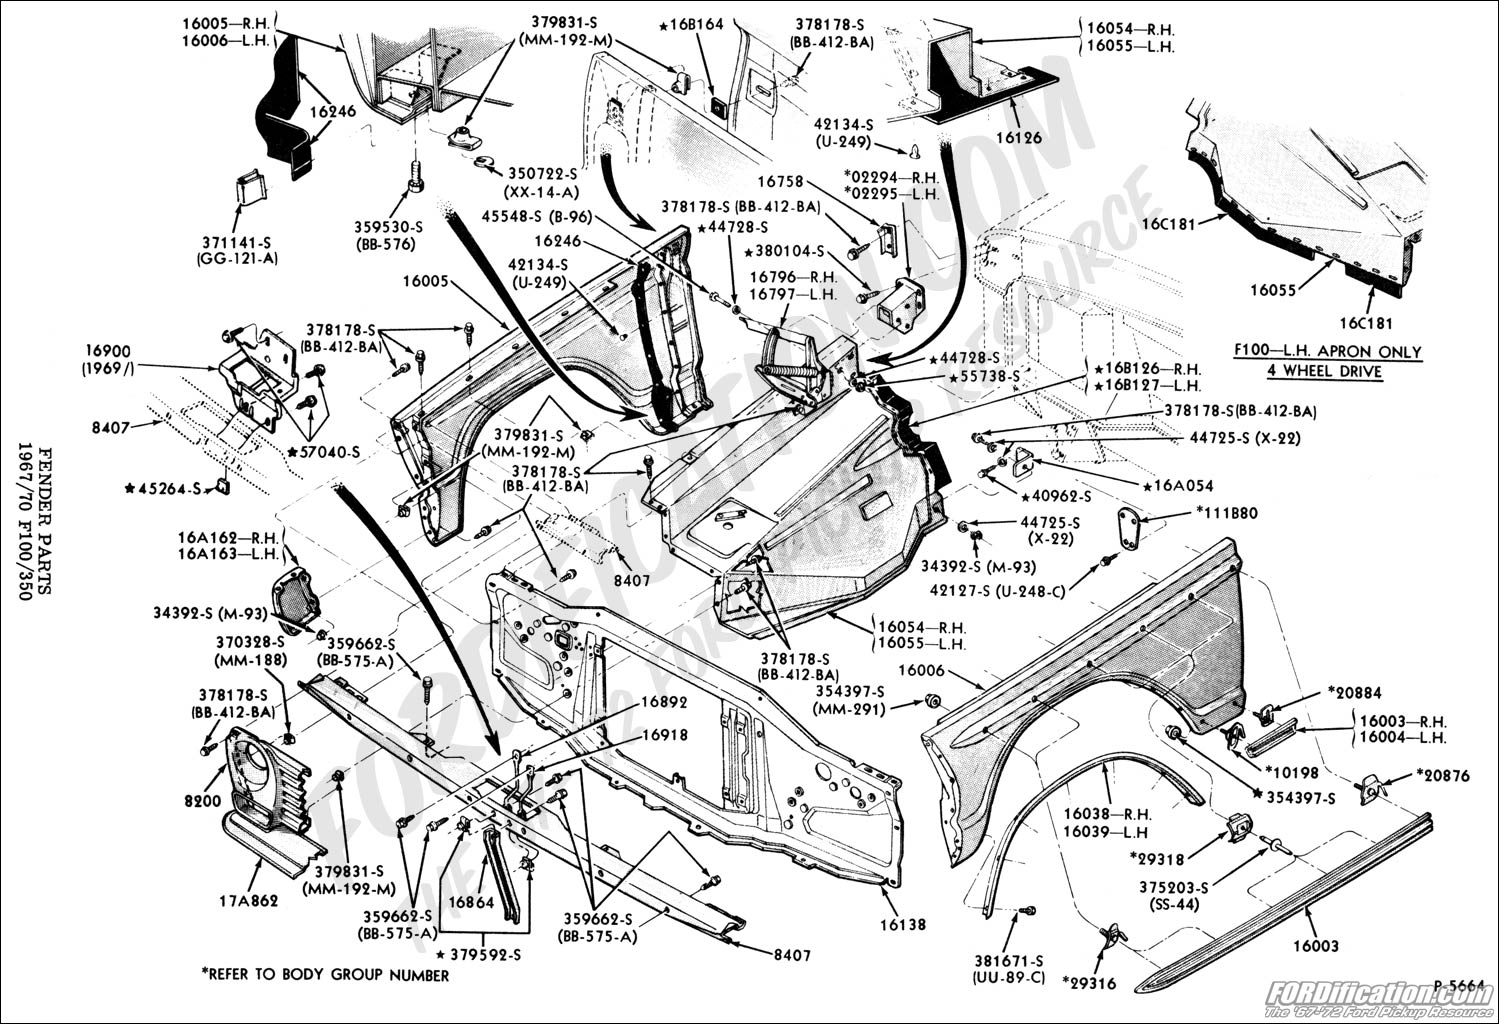 2004 Ford Taurus Fuel Gauge Wiring Diagram Free Download as well Viewtopic also H H Jazzmaster besides Wiring Diagram Ford Mustang 1968 as well Buick Car Door Parts Diagram. on wiring diagram fender mustang